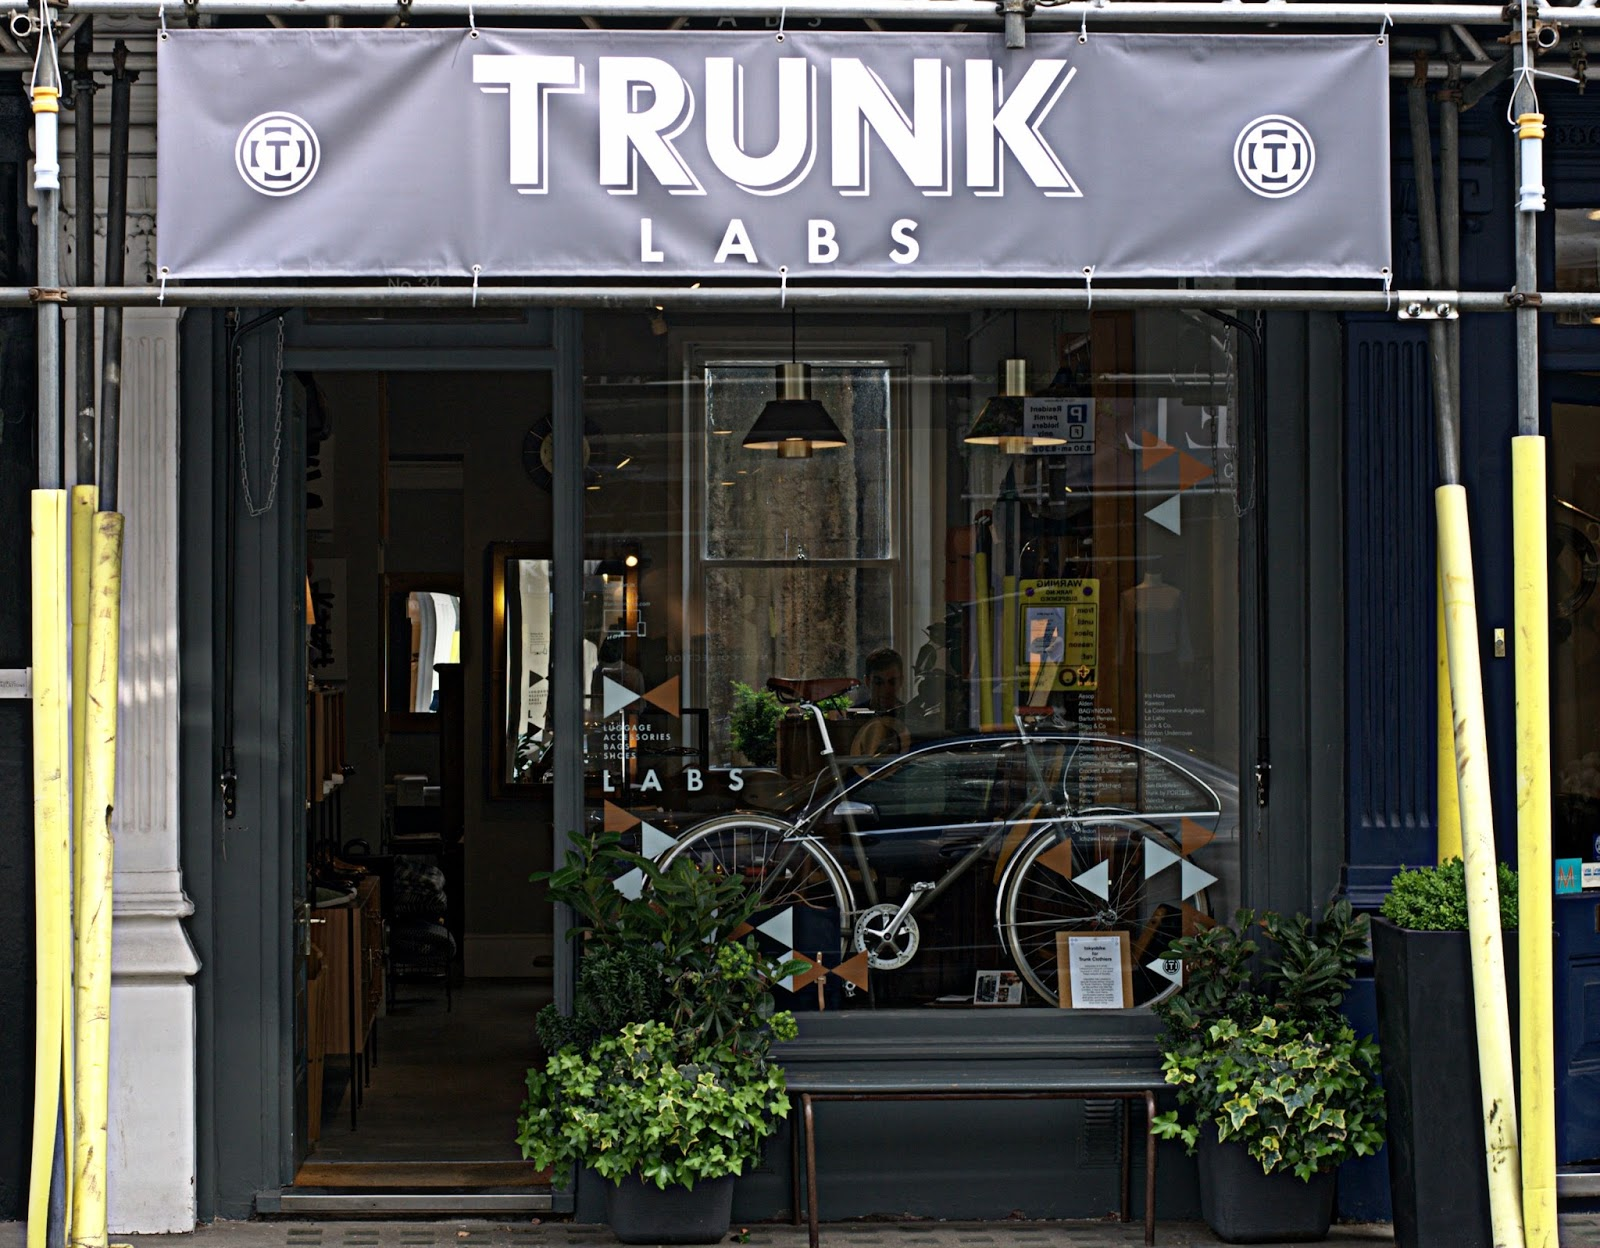 trunk_labs_london_gtfashiondiary